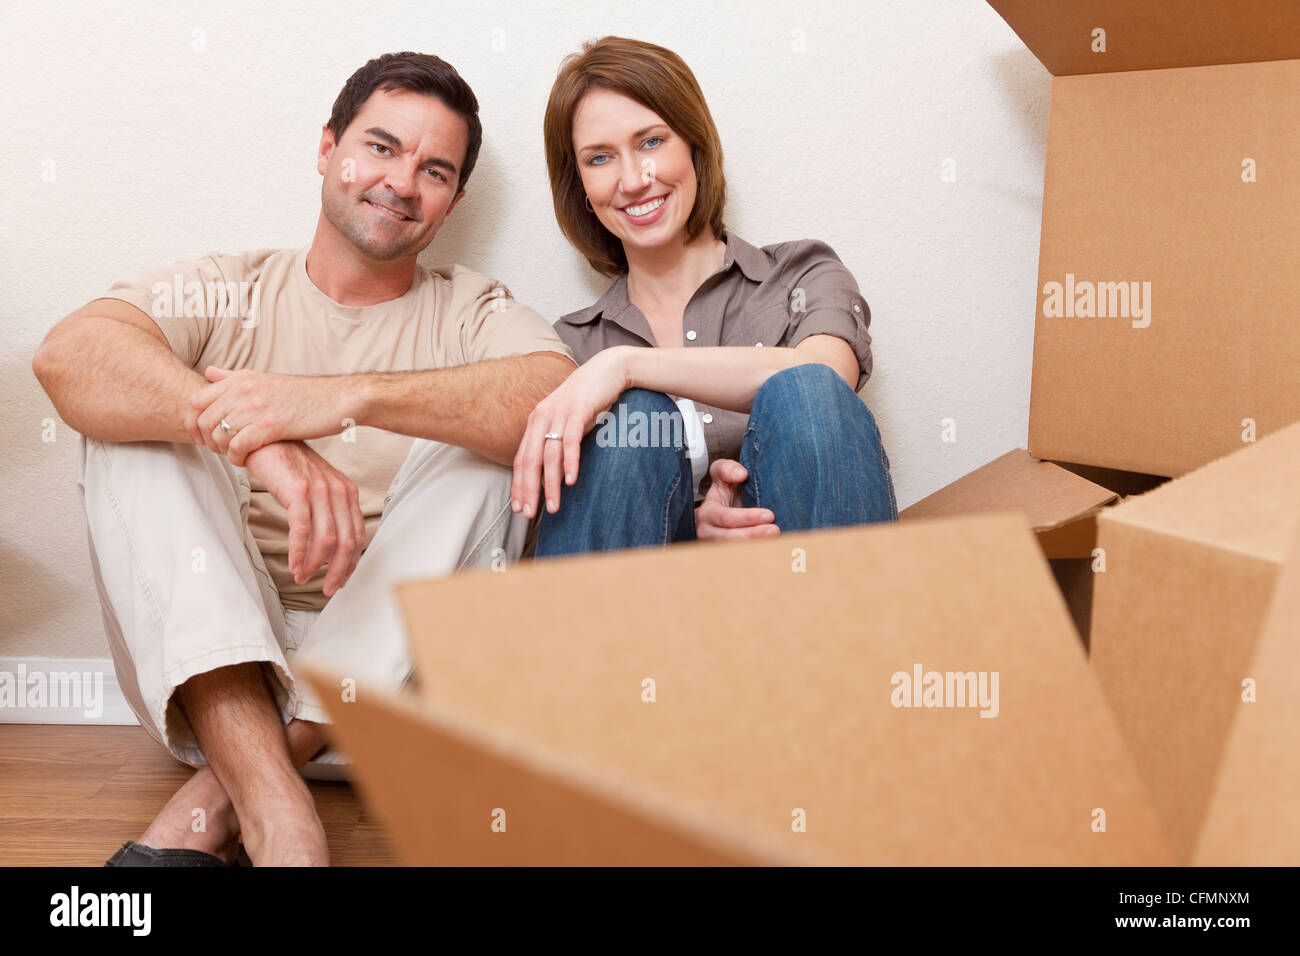 Happy couple in their thirties relaxing while unpacking or packing boxes and moving into a new home. - Stock Image